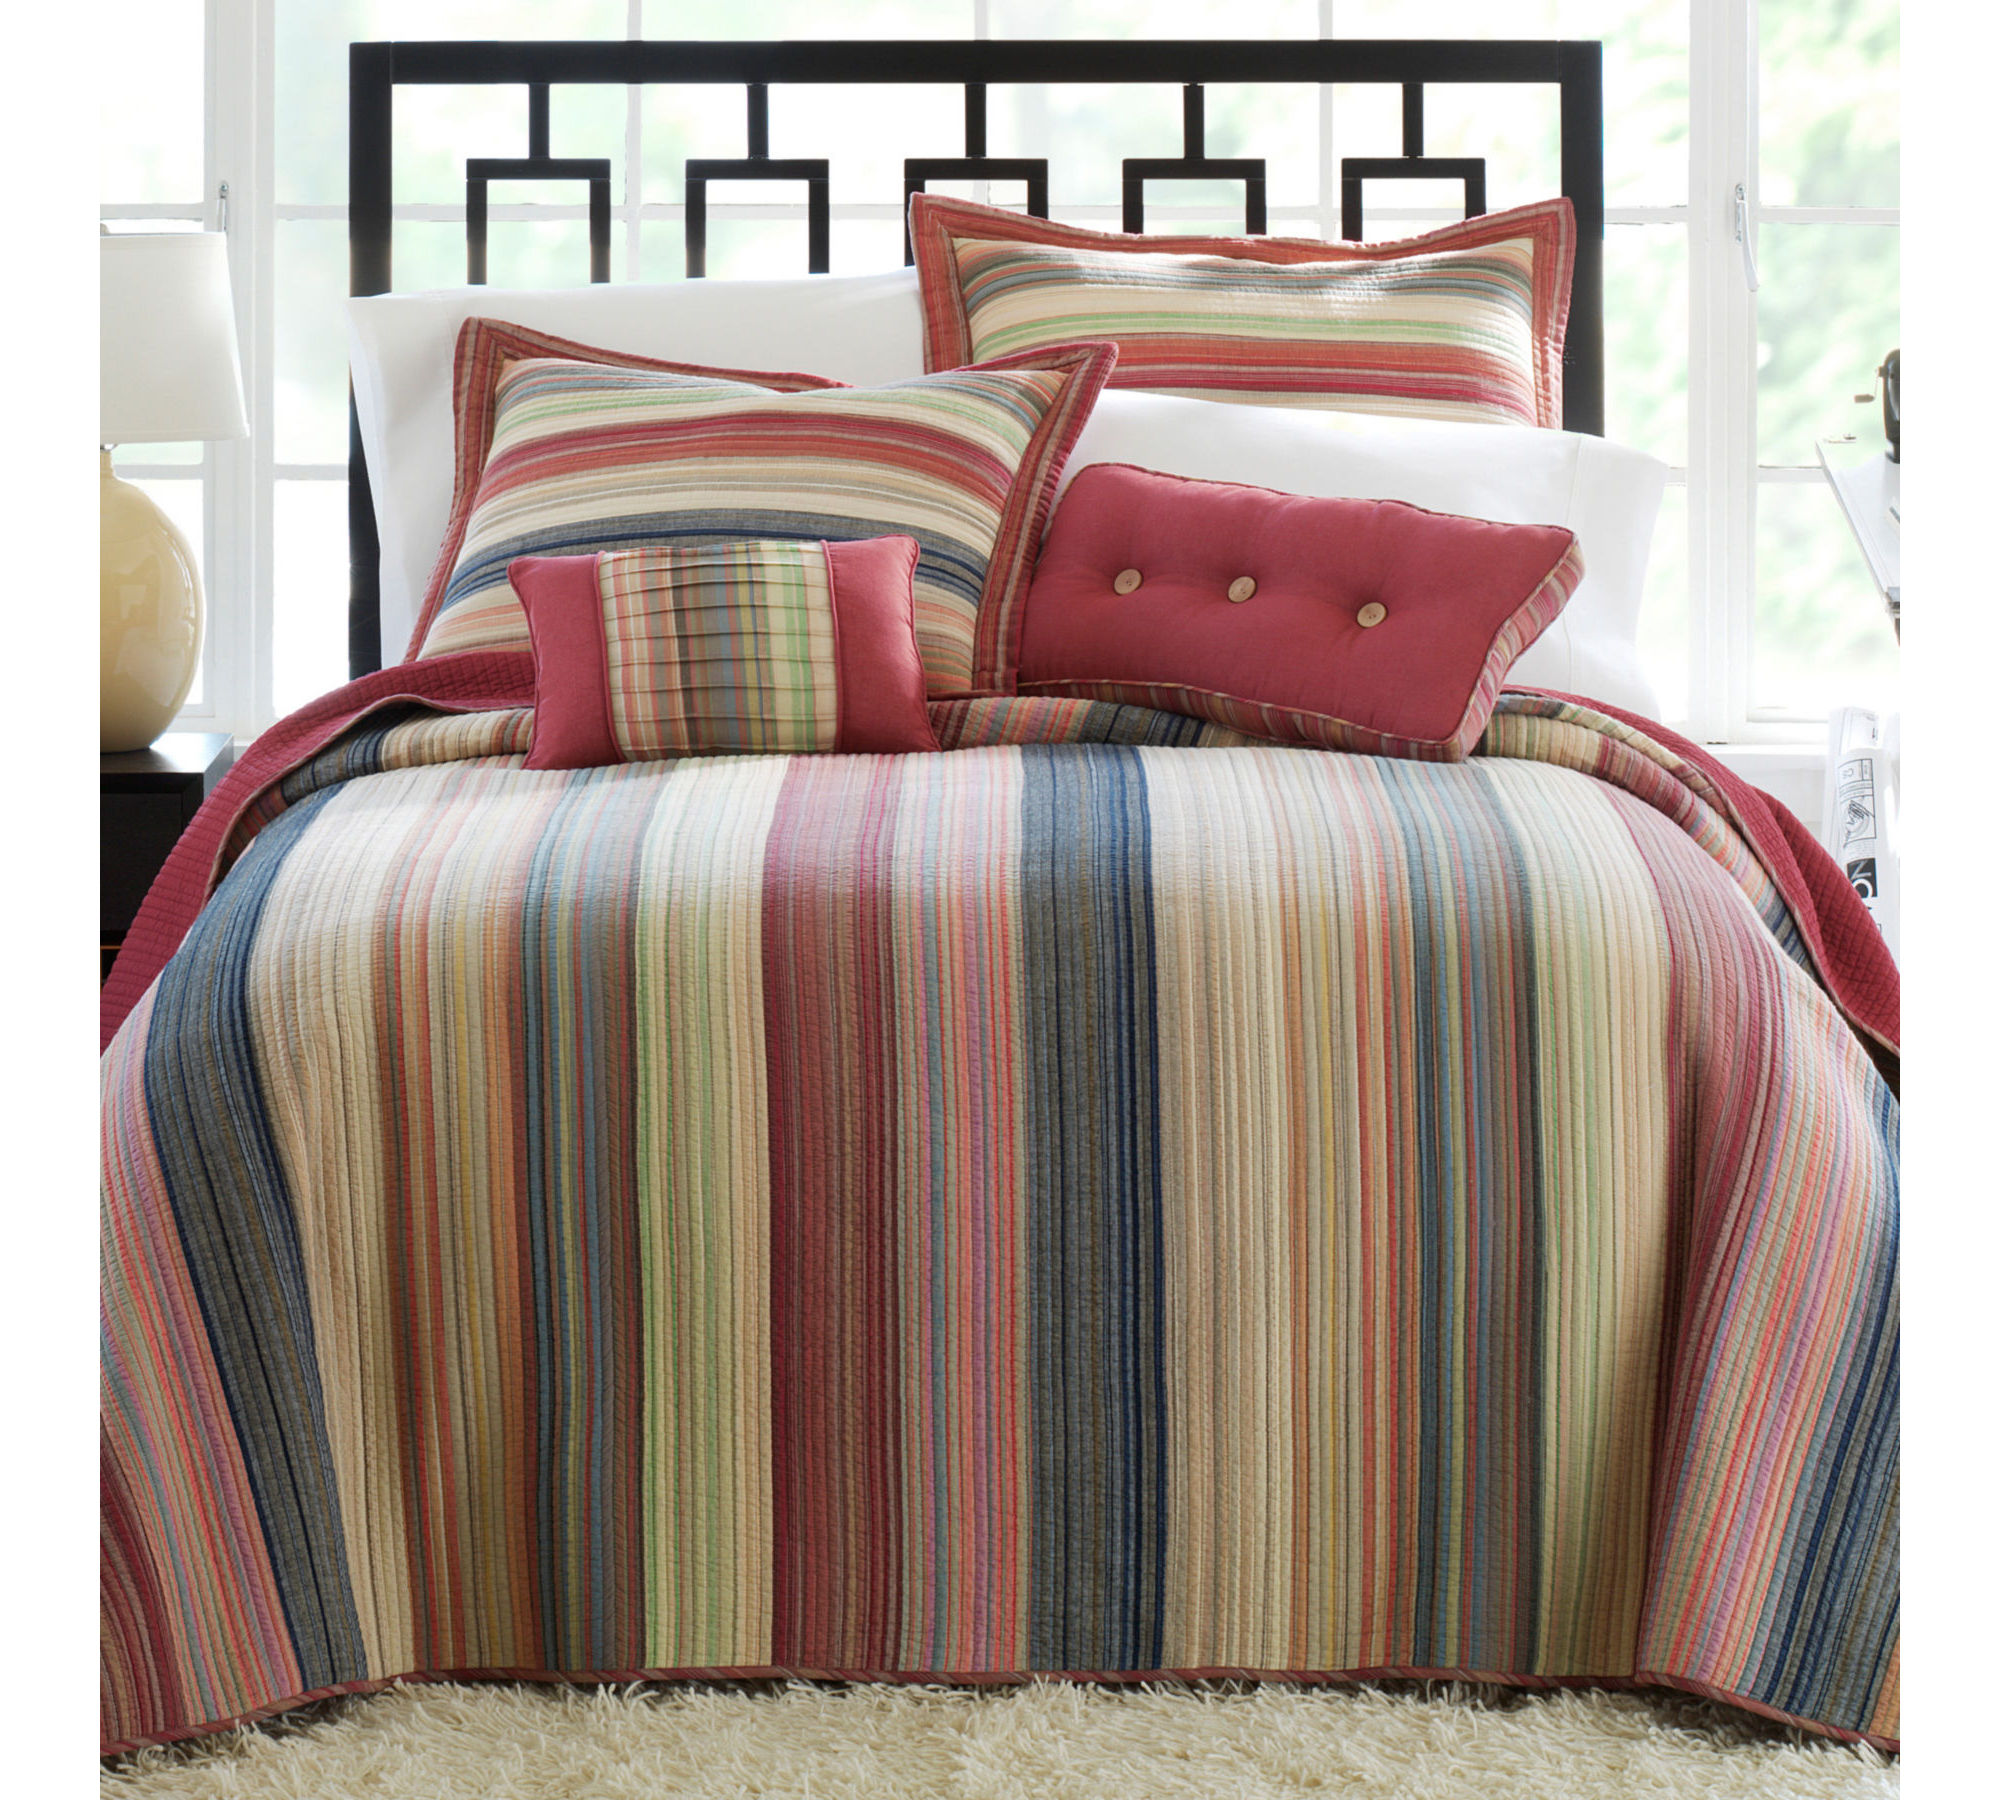 Wavy Chevron And Striped Comforters